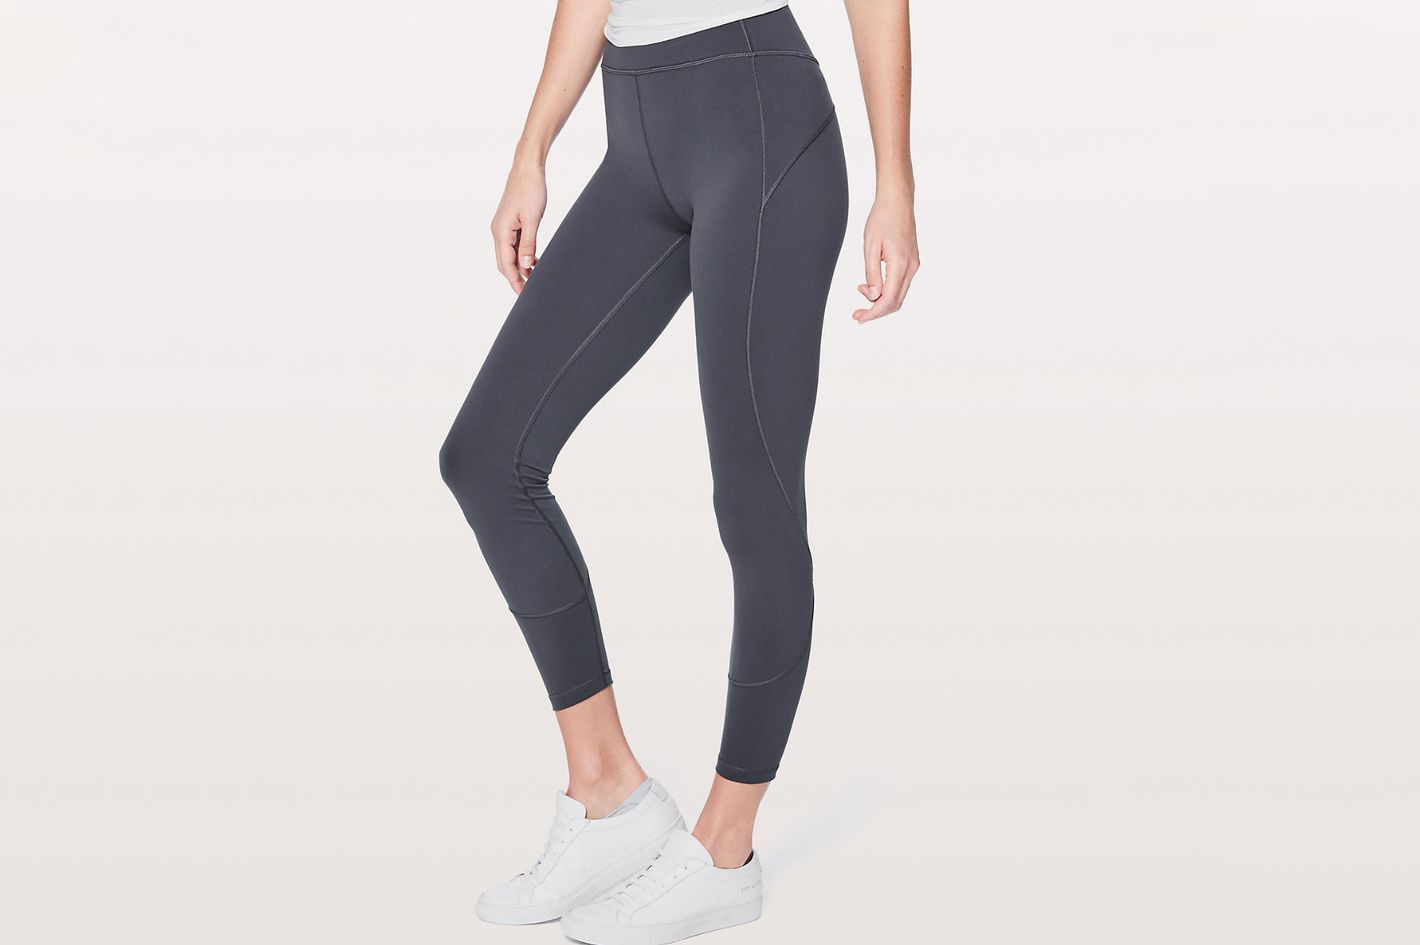 806aadaad50655 The Absolute Best Workout Clothes for Women